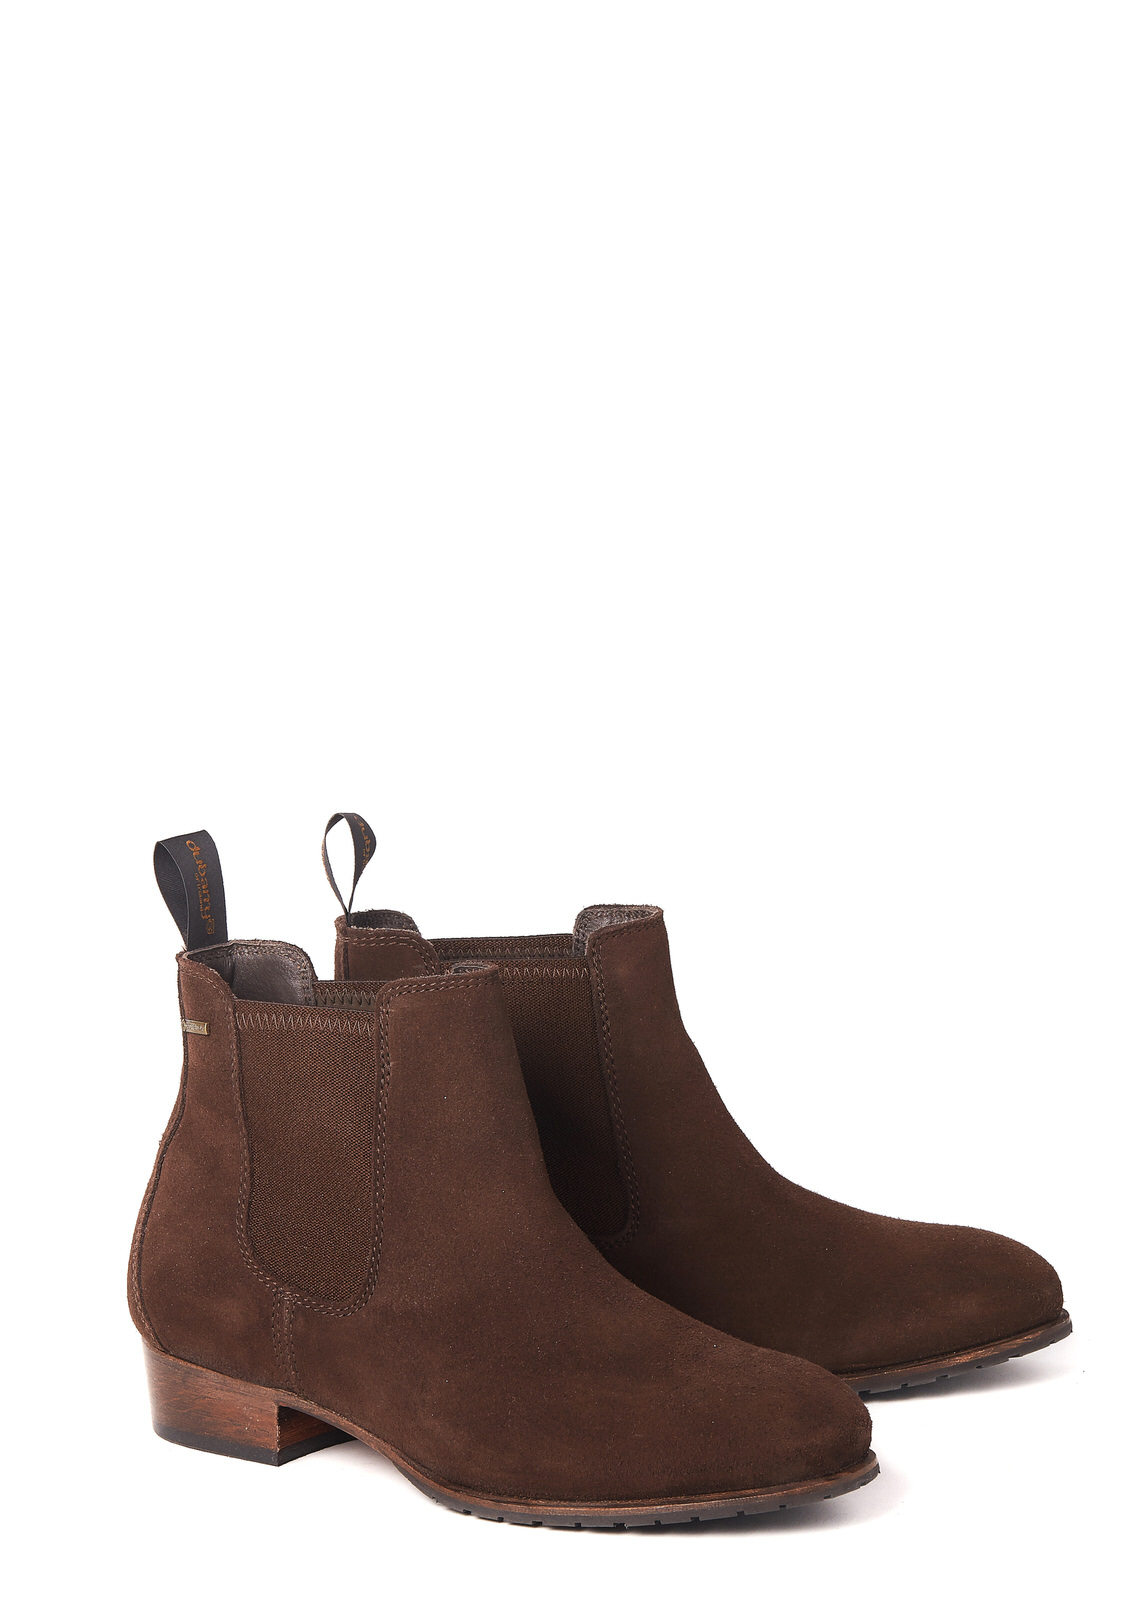 Cork Leather Soled Boot - Cigar